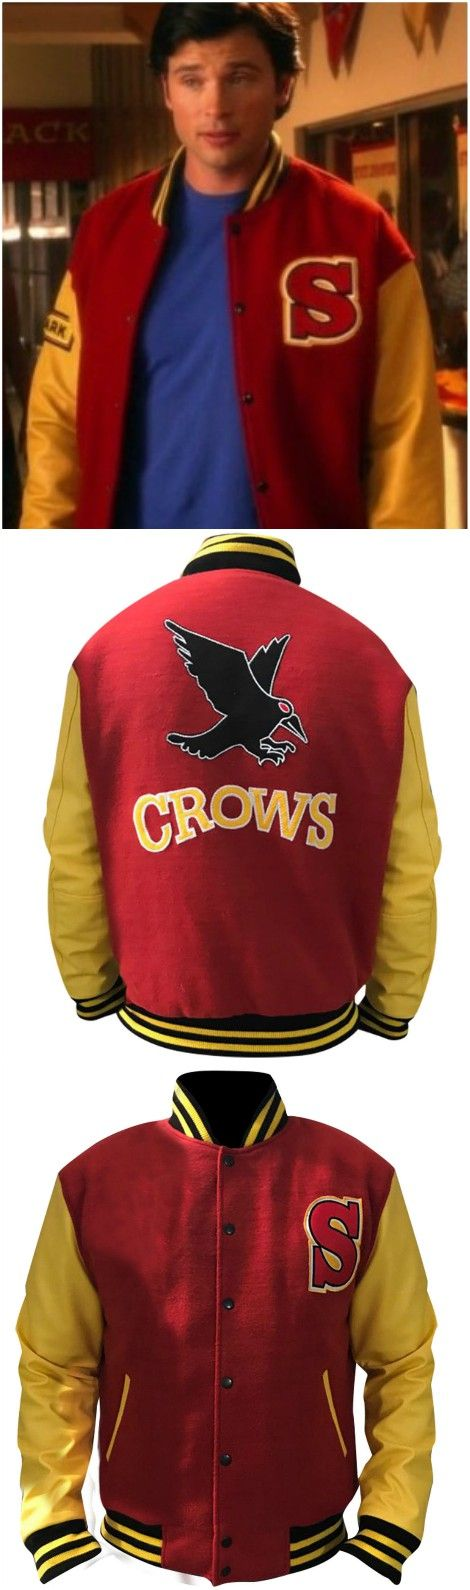 Small Ville Crows Superman Clark Letterman Jacket now available in our online store. Shop now and avail the Discounted price.  #celebrity #celebs #fashions #fashion #hfafashion #superman #clarkkent #fashionblogger